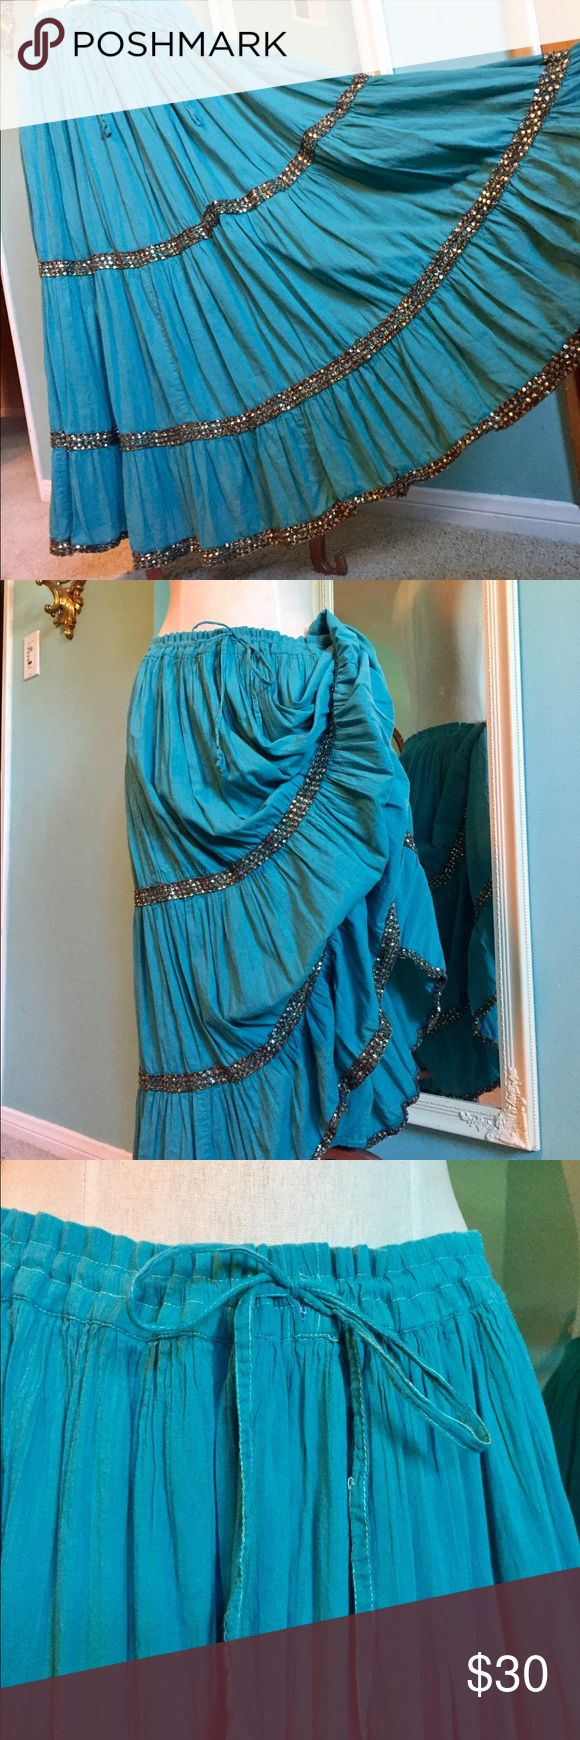 "Boho Turquoise Tiered Maxi skirt Beautiful BoHo tiered turquoise cotton maxi w/ three sparkly bands. Lots of material, great color, very flowy. Drawstring waist, no size tag: saying medium as drawstring waist expands to 44 "" and cinches to fit smaller sizes. In good pre-loved condition, two areas (see pics) on sequin bands could be tacked back down to secure but not noticeable when wearing. Lining w/ splits for movement. Last pic for inspiration. Perfect for a tropical cruise, the beach, a…"